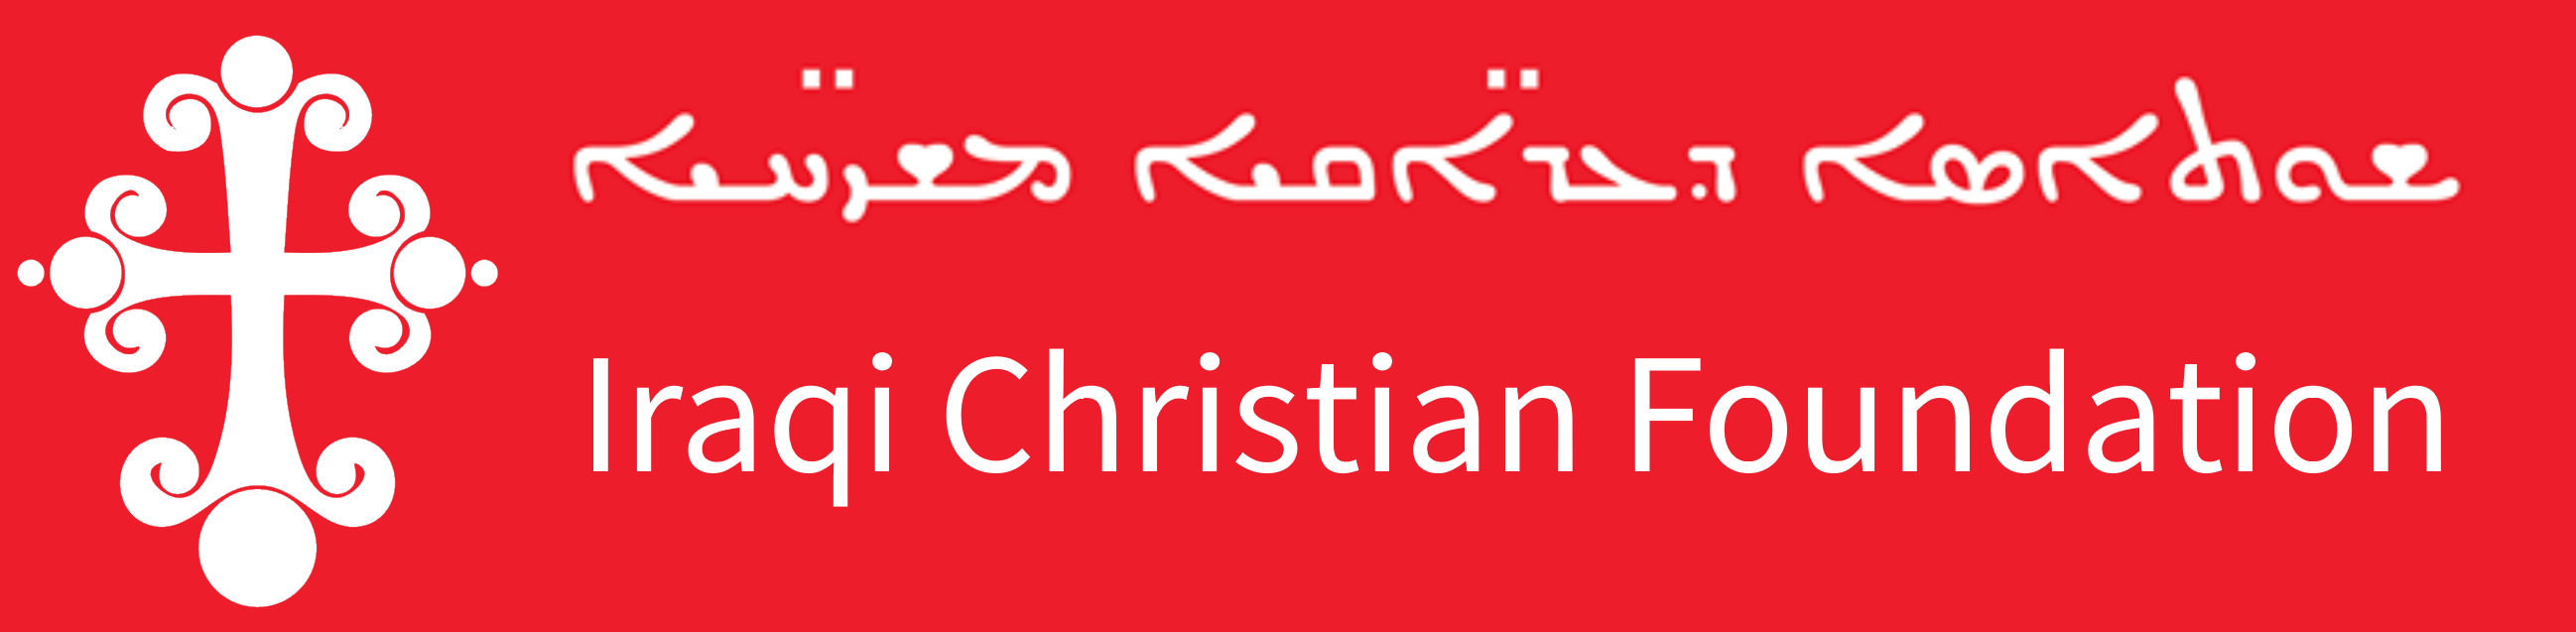 Iraqi Christian Foundation